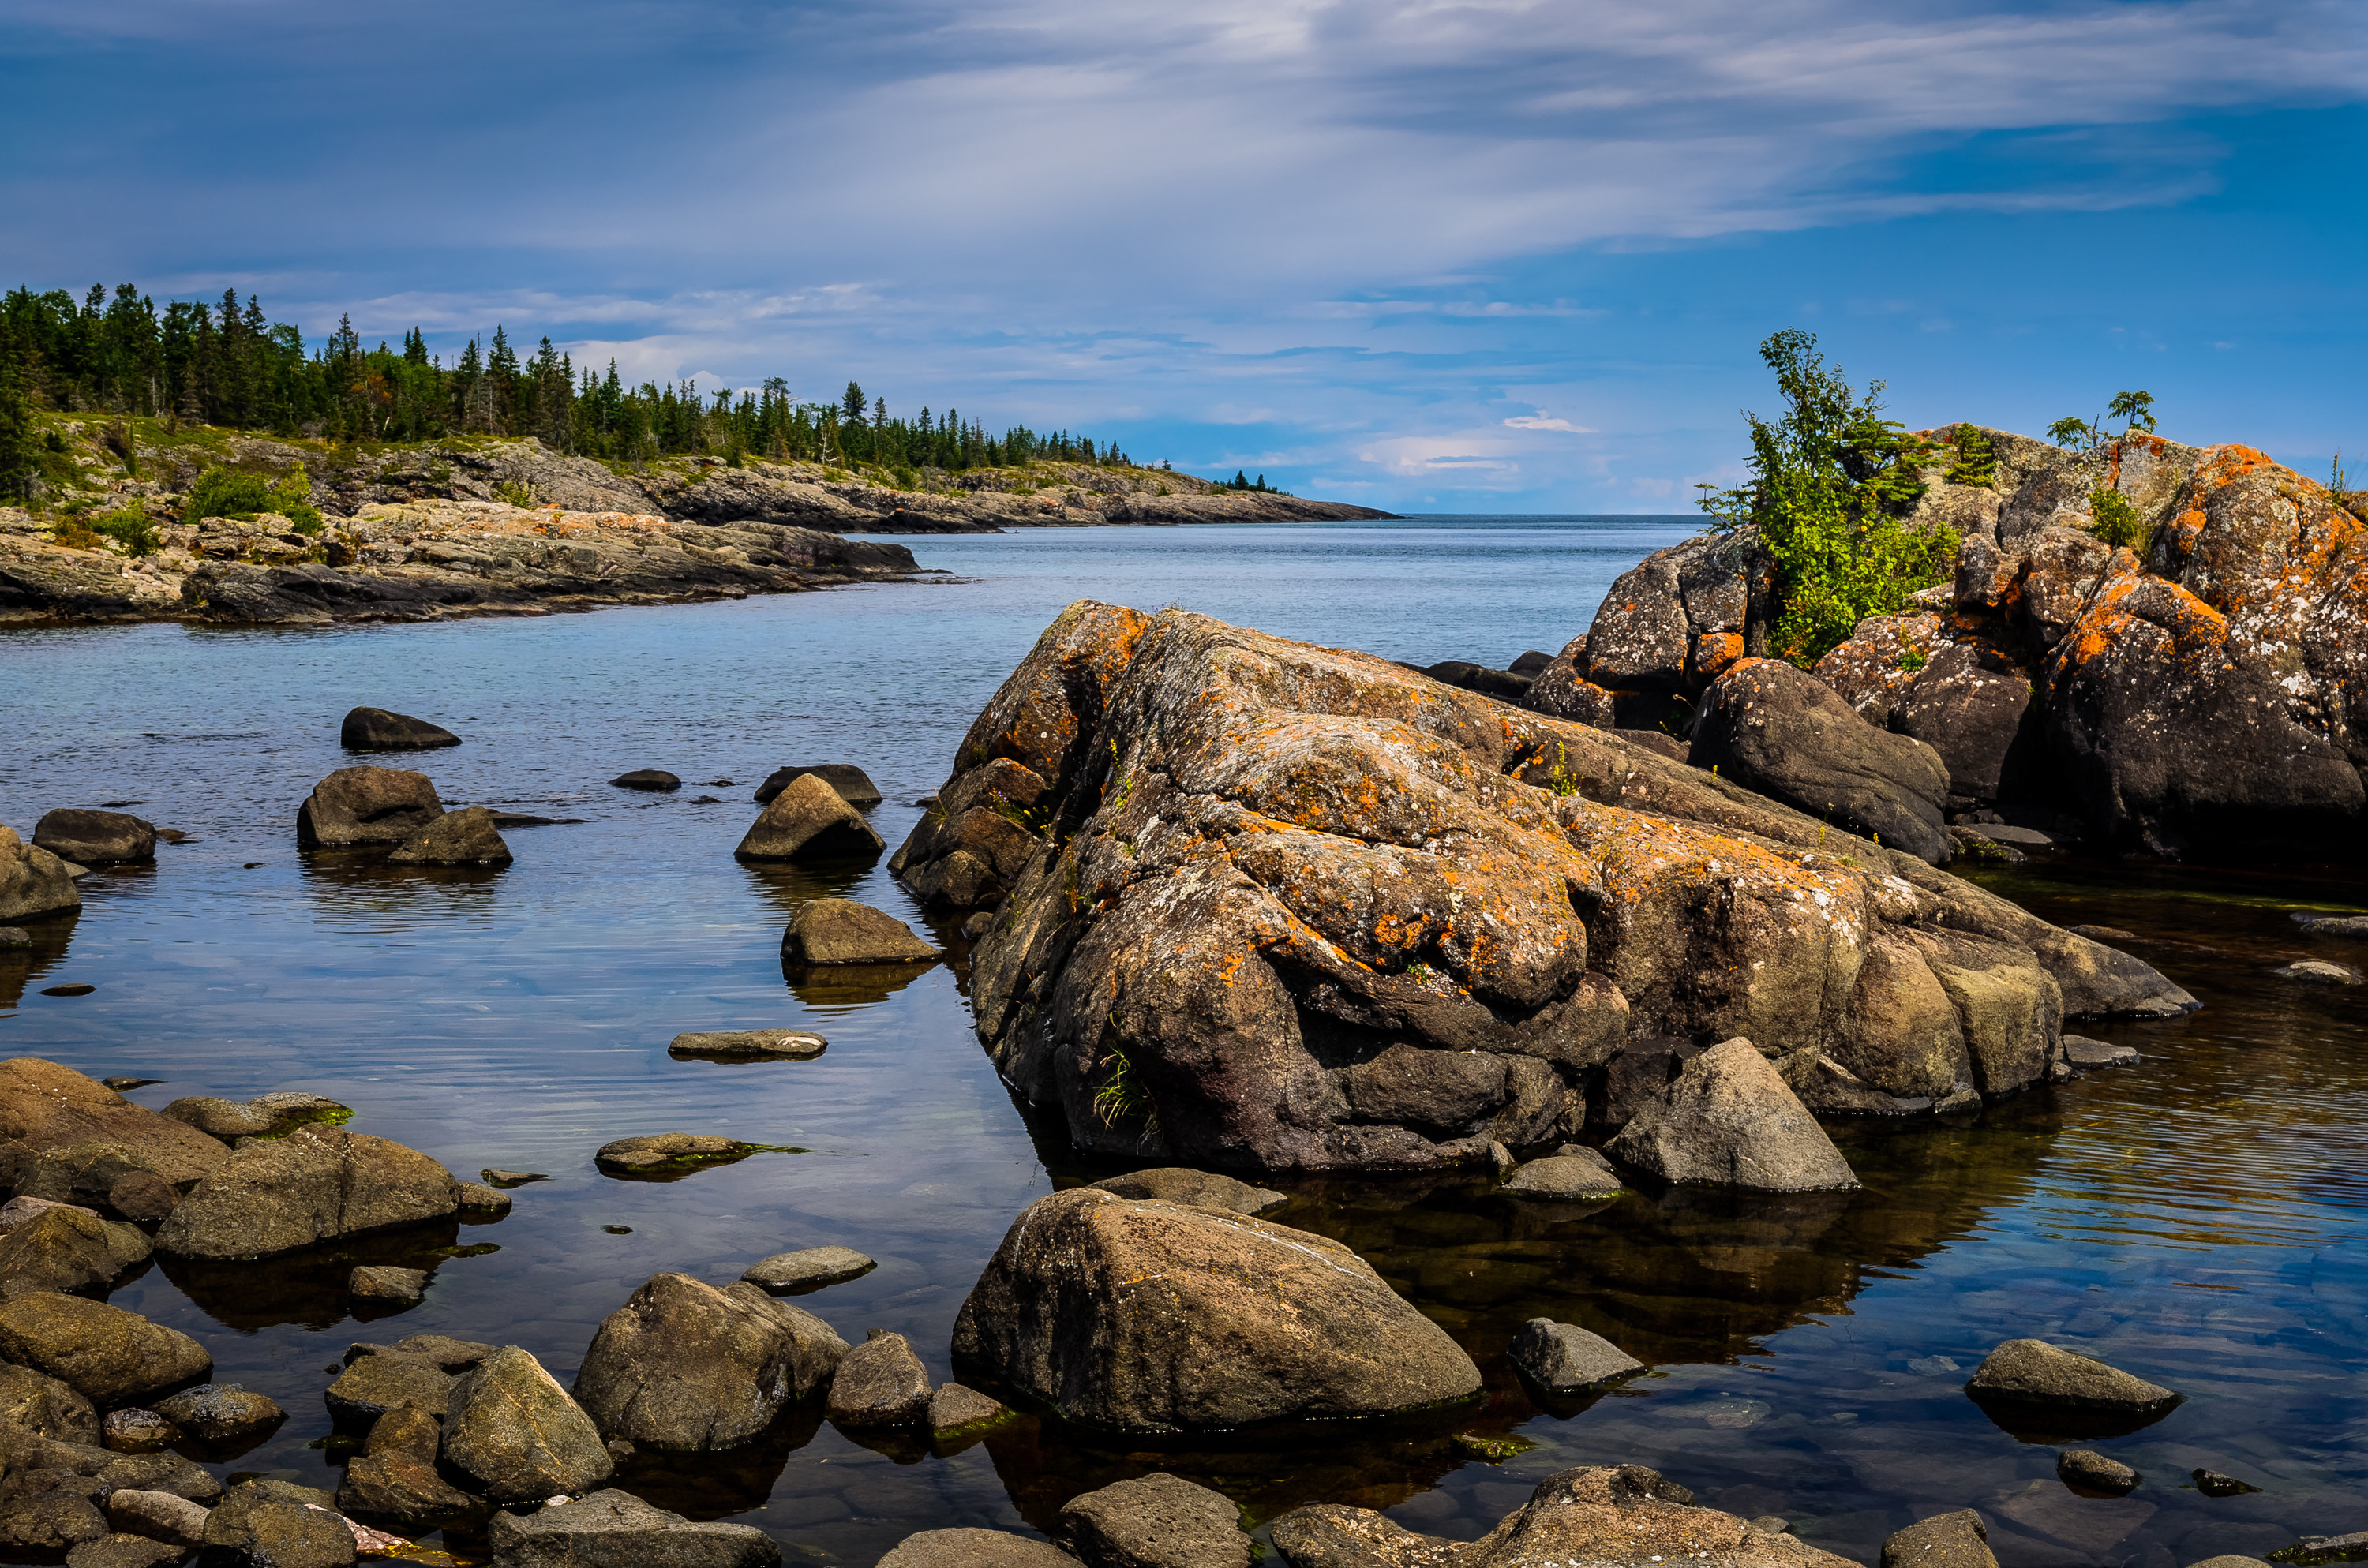 Coastal areas of Isle Royale were once submerged beneath prehistoric lake waters, and contain many tumbled boulders and other large rocks